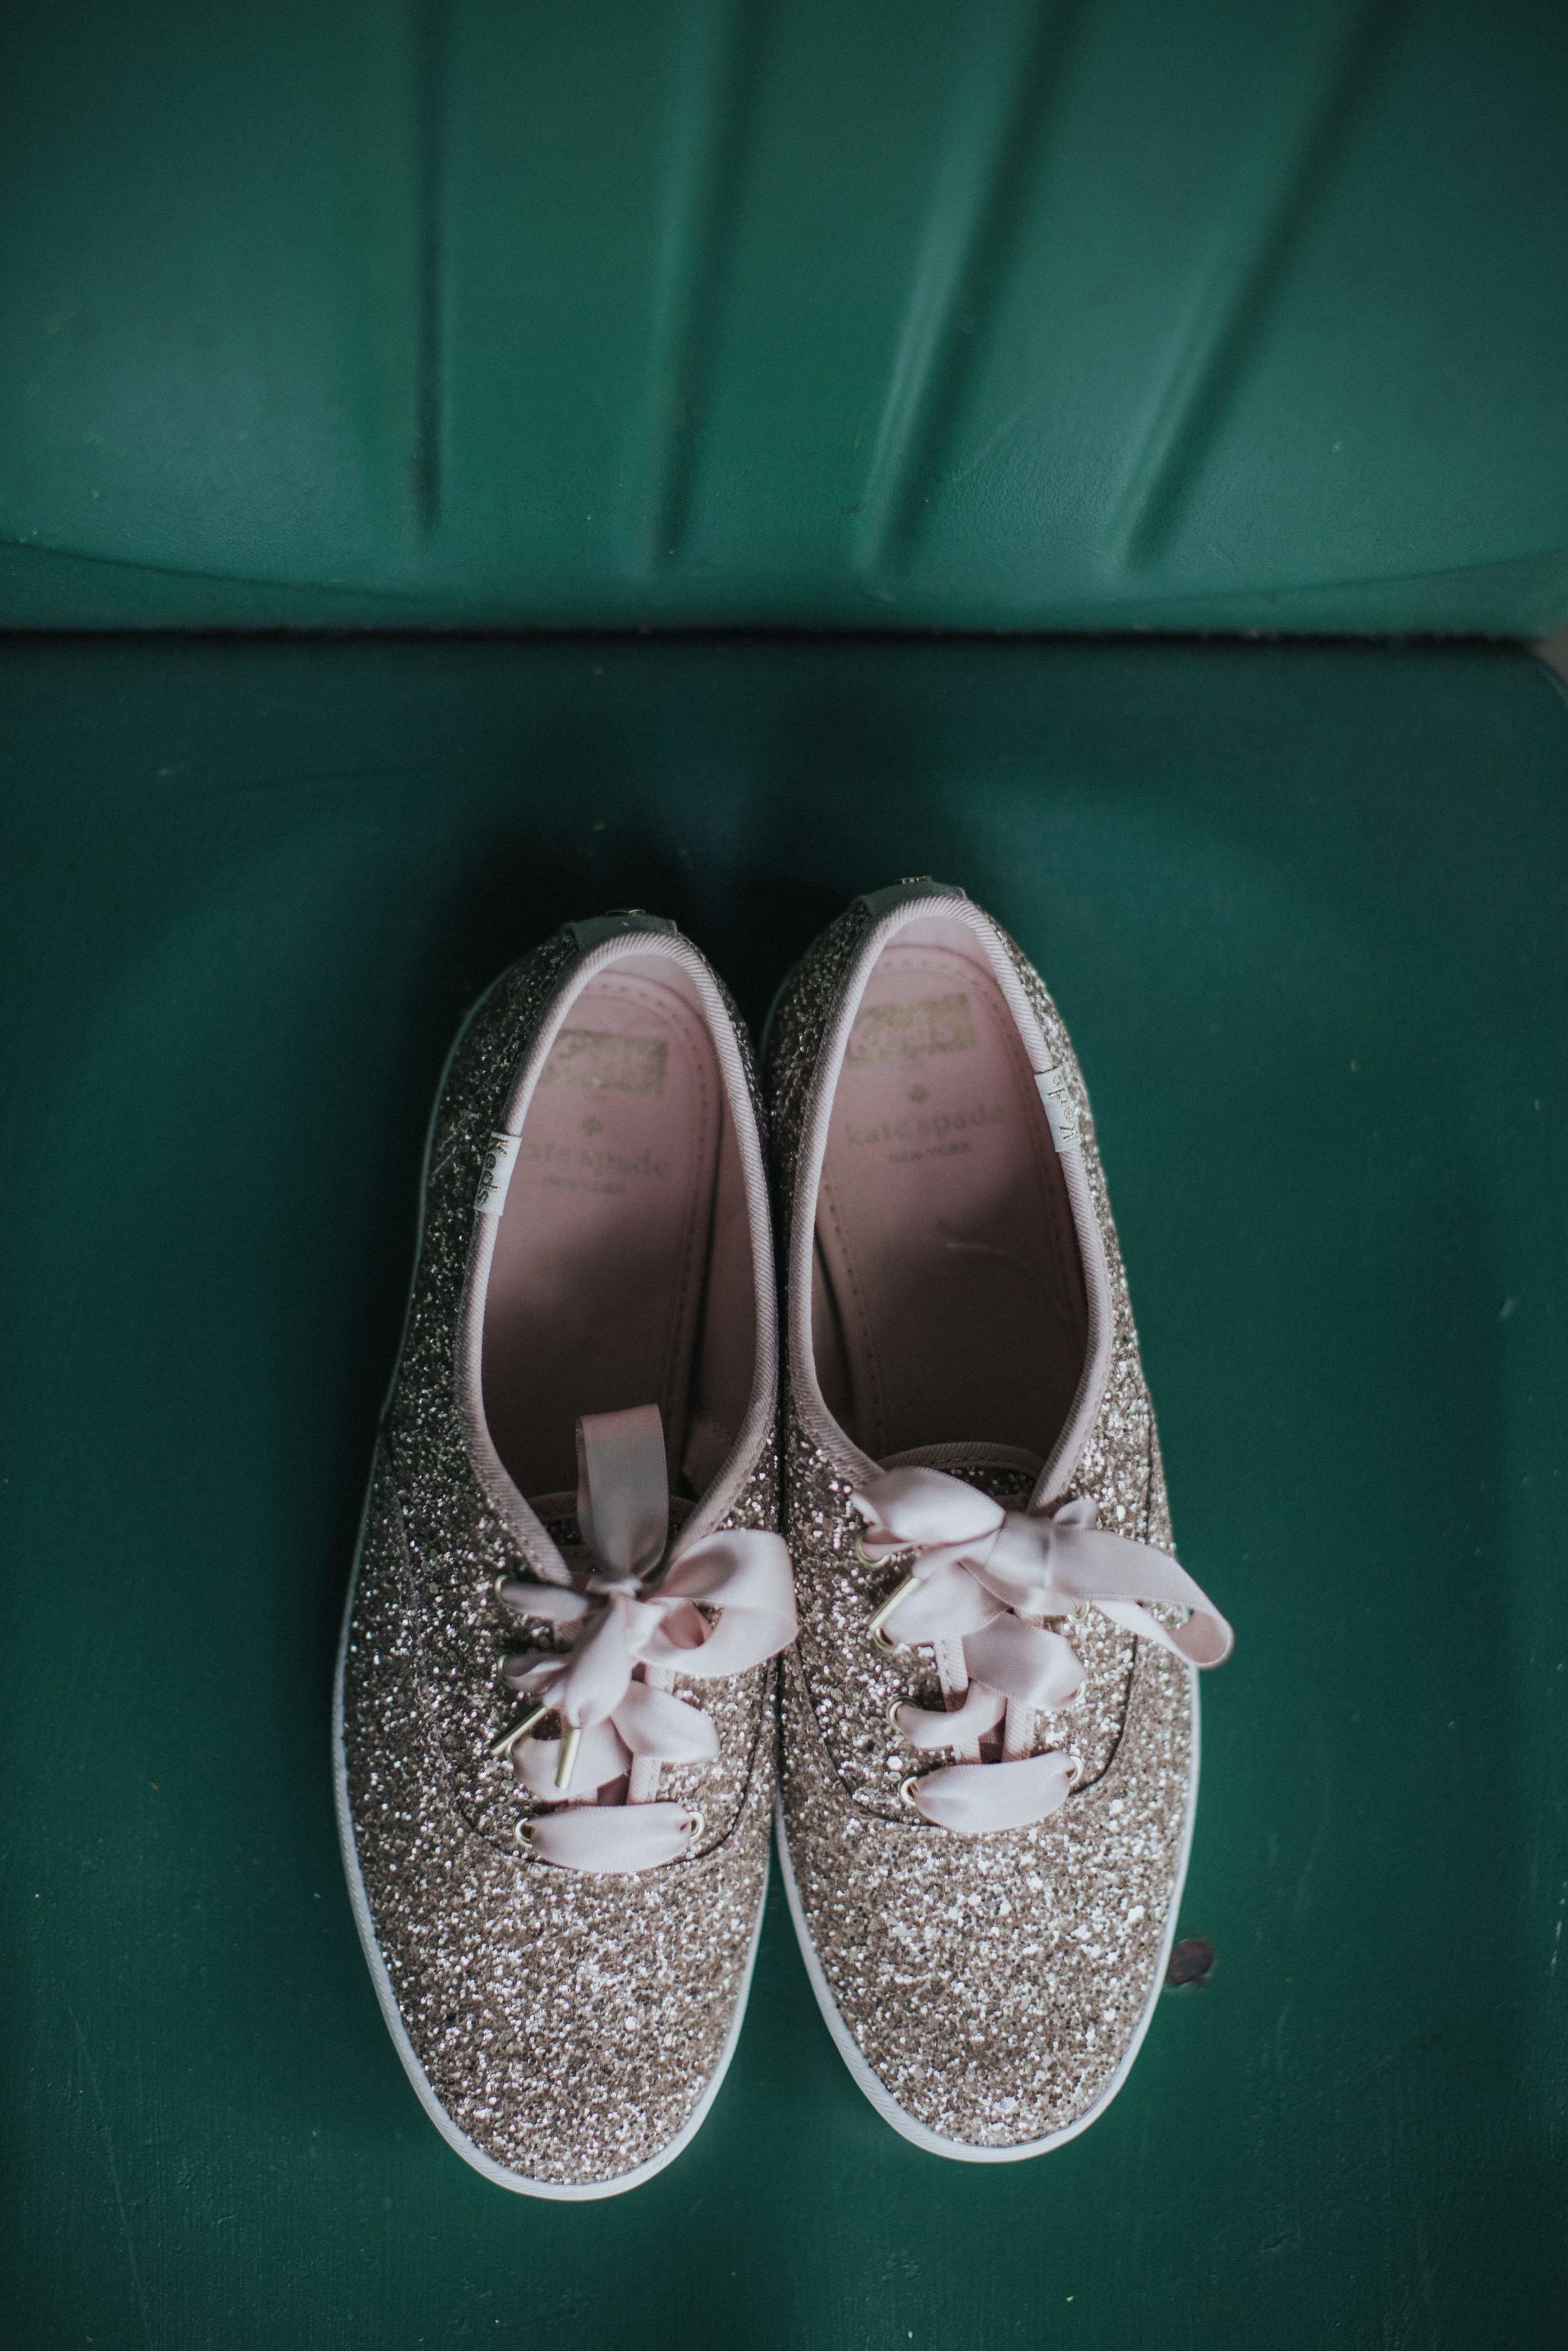 Bride's sparkly wedding sneaker wedding shoes for rustic wedding in Farmington, PA planned by Exhale Events. Find more wedding inspiration at exhale-events.com!